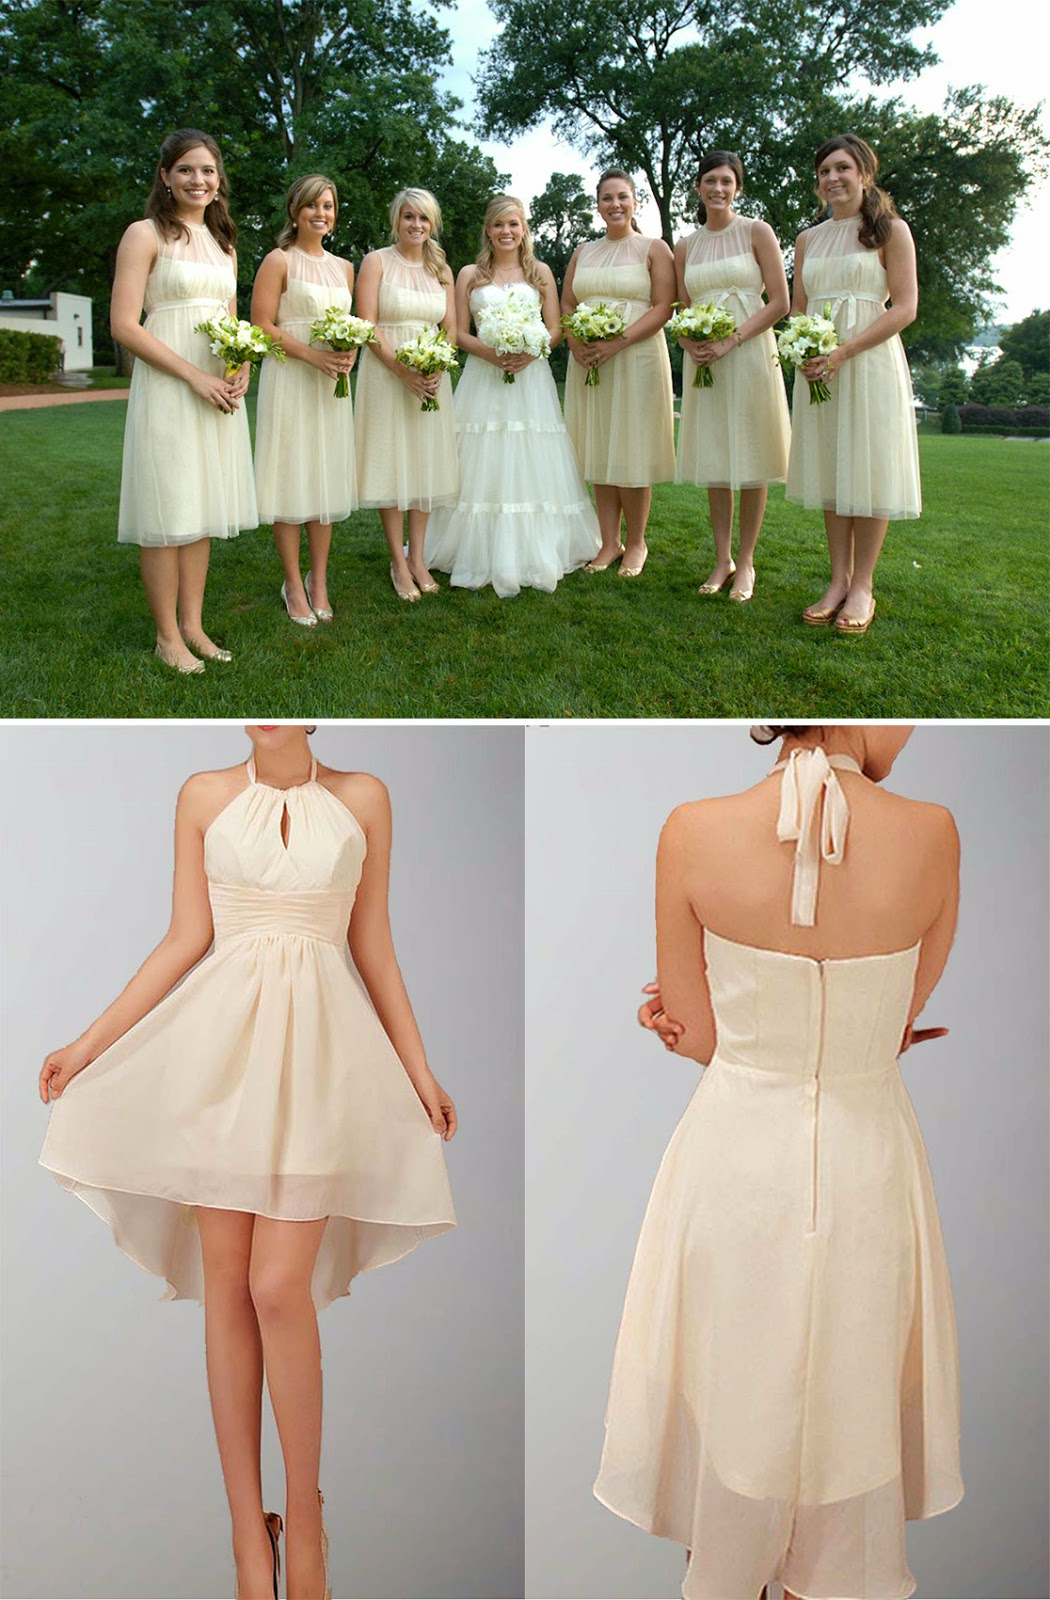 More Details About The Bottom White Bridesmaid Dressplease Click Here